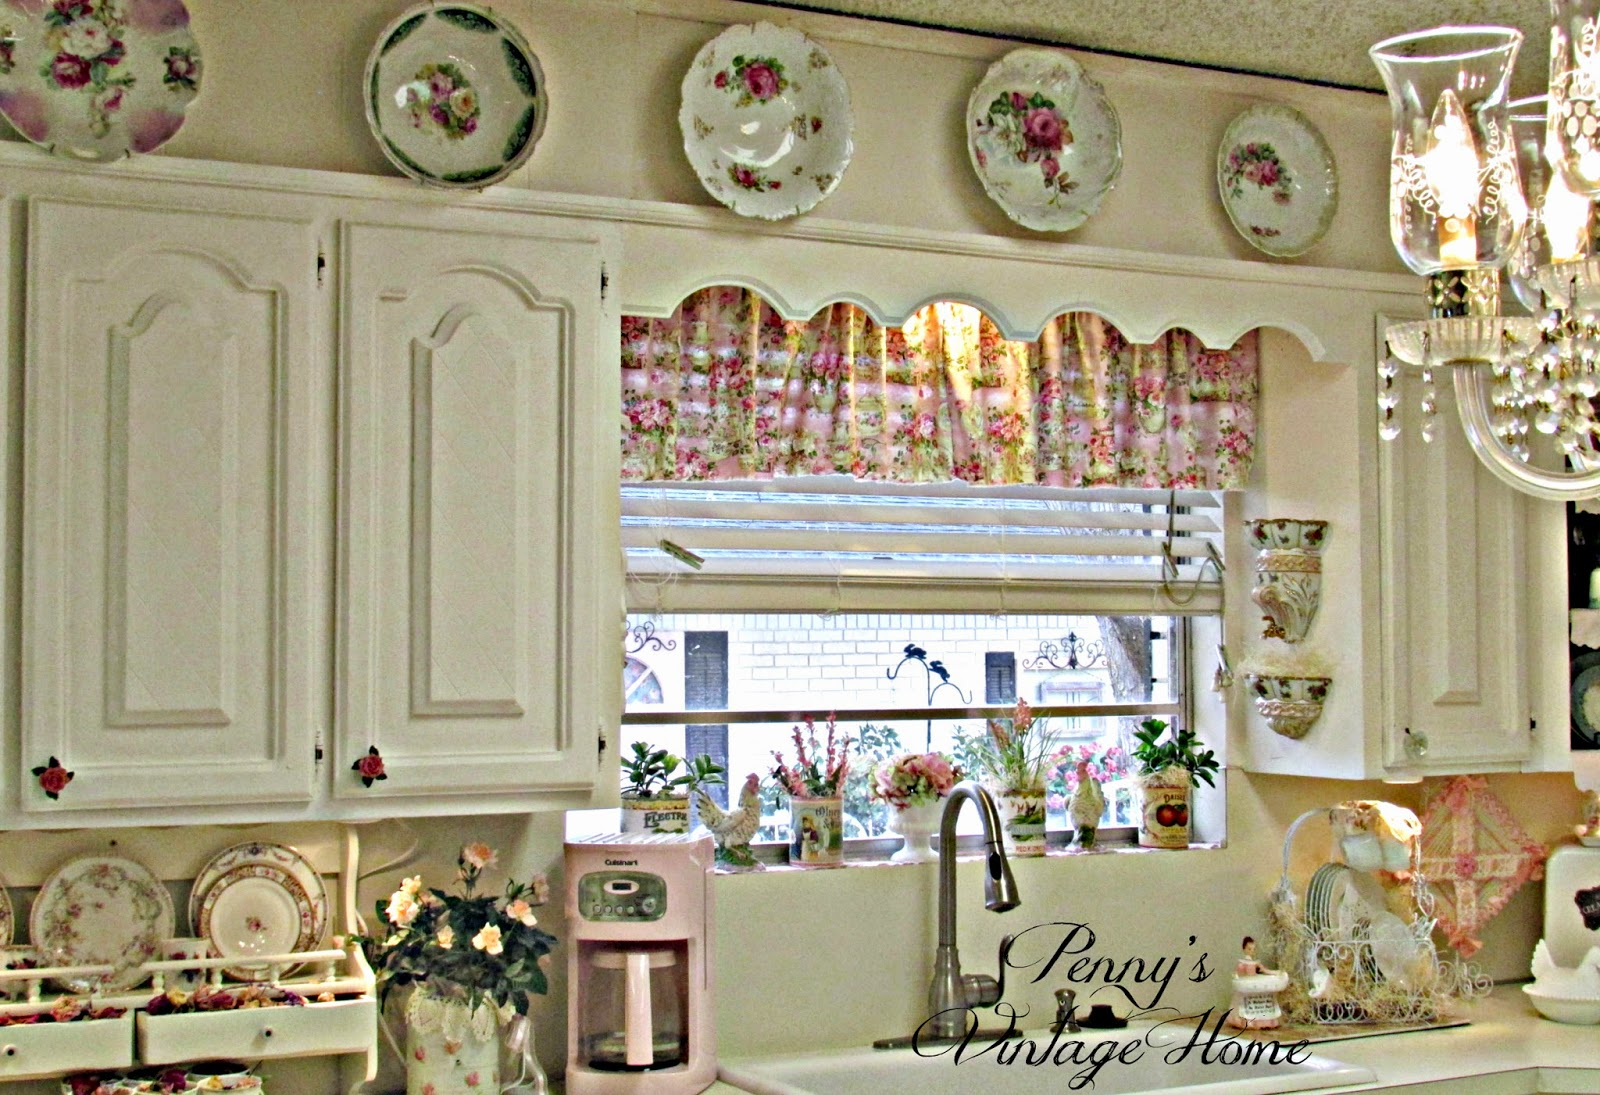 Pennys Vintage Home How To Hang Decorative Bowls On The Wall Wire A Ceiling Rose In Simple Steps Craftomaniac If You Try Use Just Original Hanger Without Add Your Bowl Will Jut Out At Bottom And Not Lay Flat